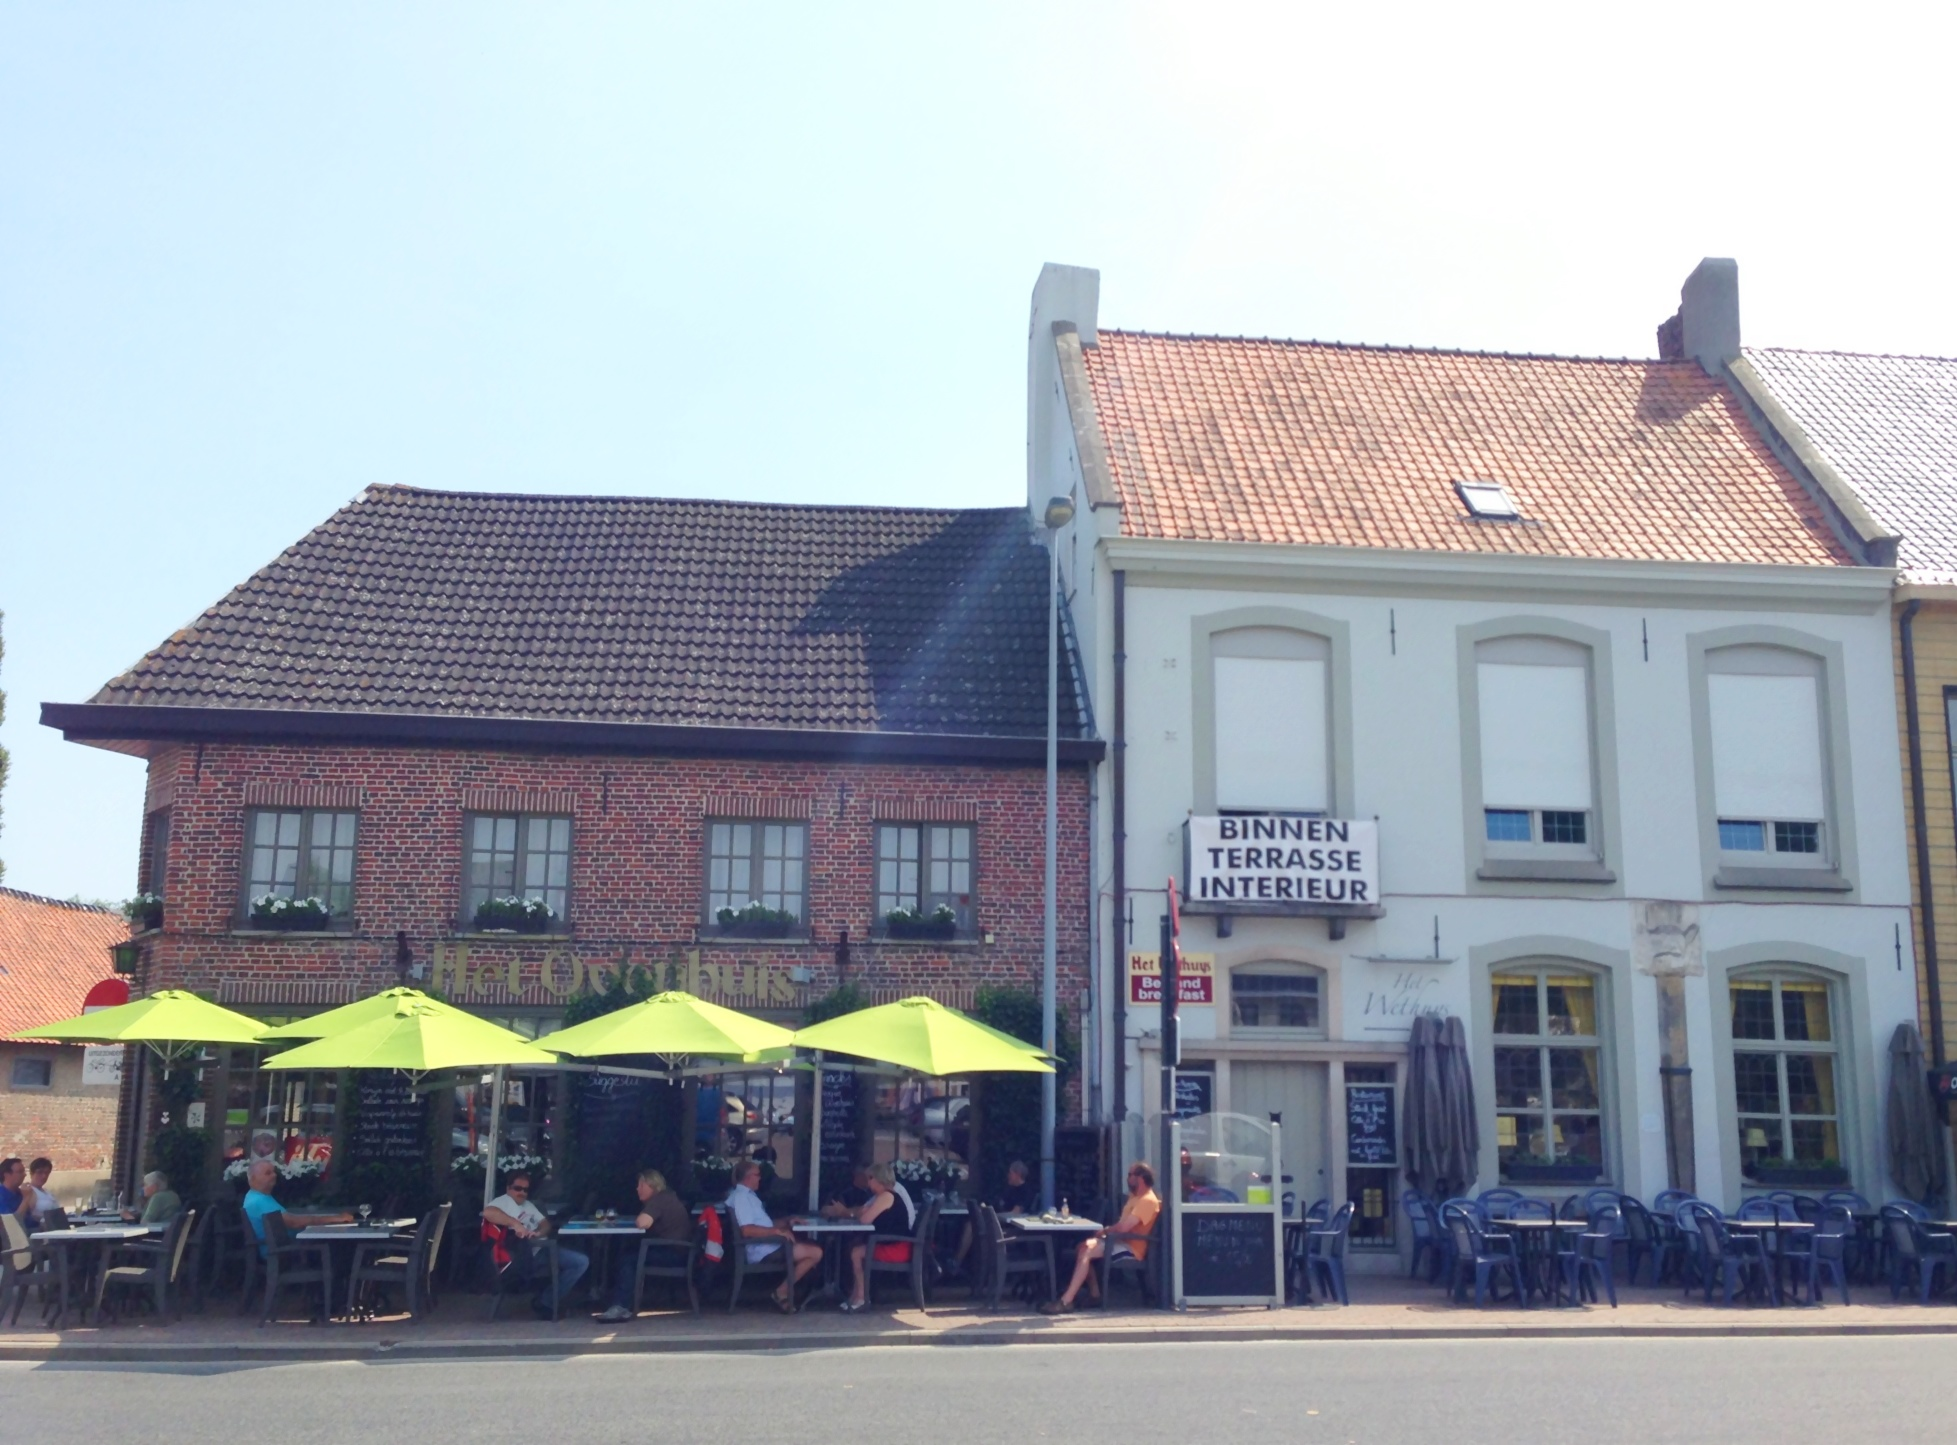 Cafe & inn owned by St. Bernardus Brewery